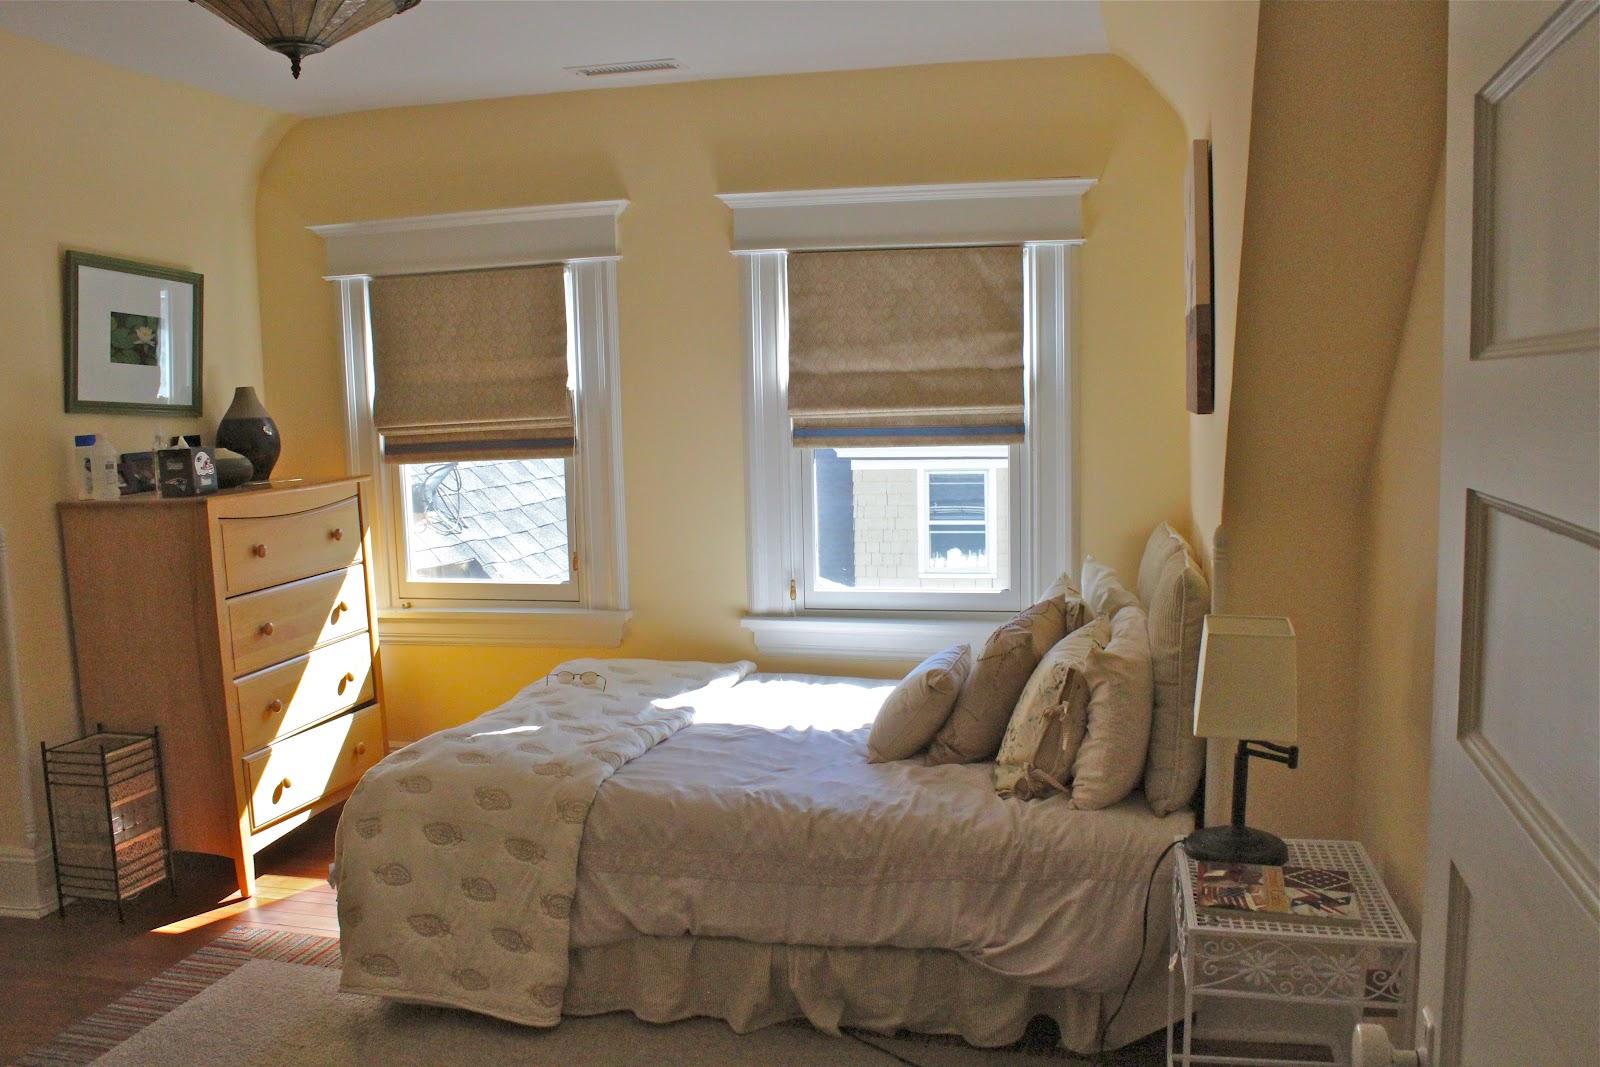 Simple Flat Roman Shades Add To The Serene Feeling In This Bedroom